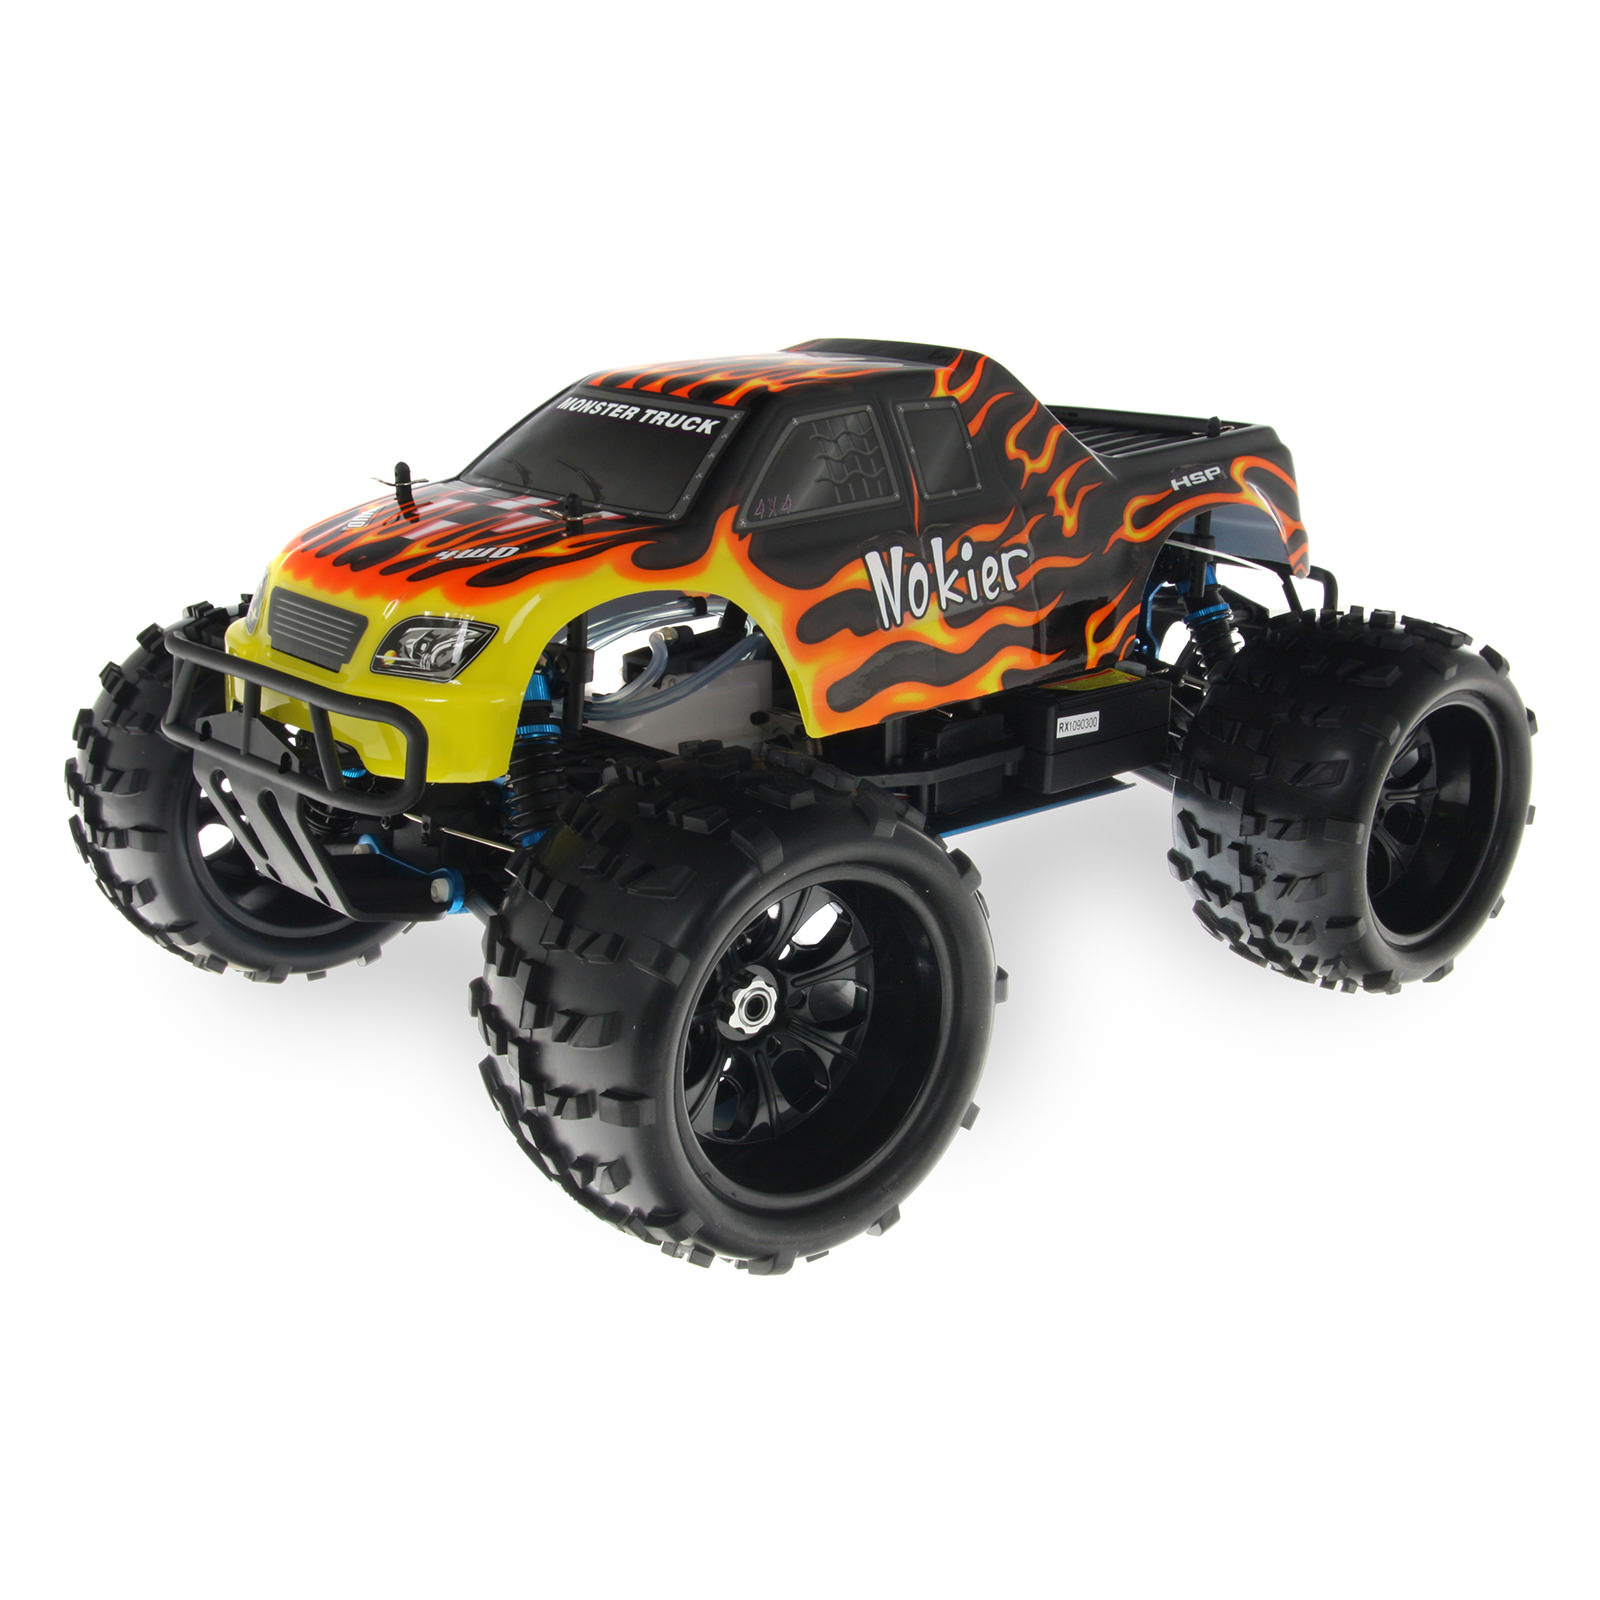 Hsp Rc Truck Nitro Gas Power Off Road Monster Truck 94188: HSP 94862-08304 Black RC Monster Truck At Hobby Warehouse